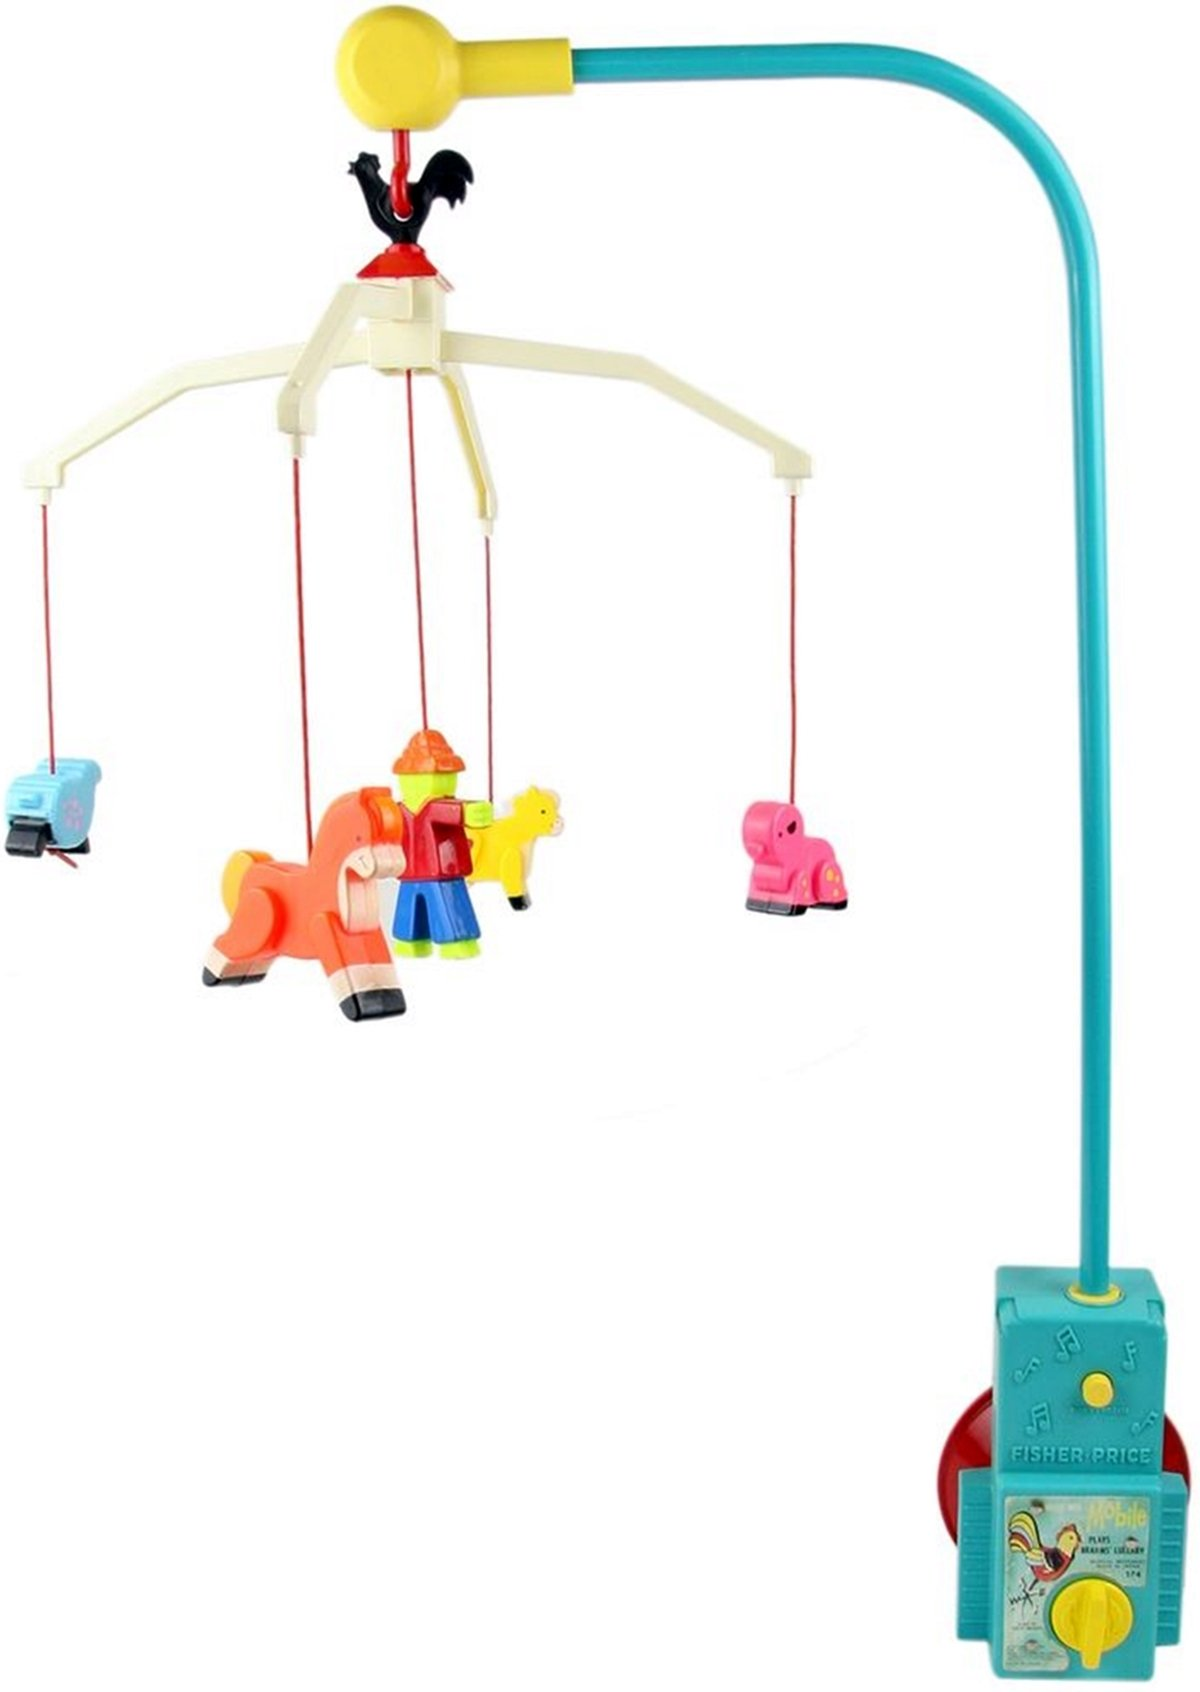 10 18 15 Musical Toys From Your Childhood We Bet You've Forgotten About